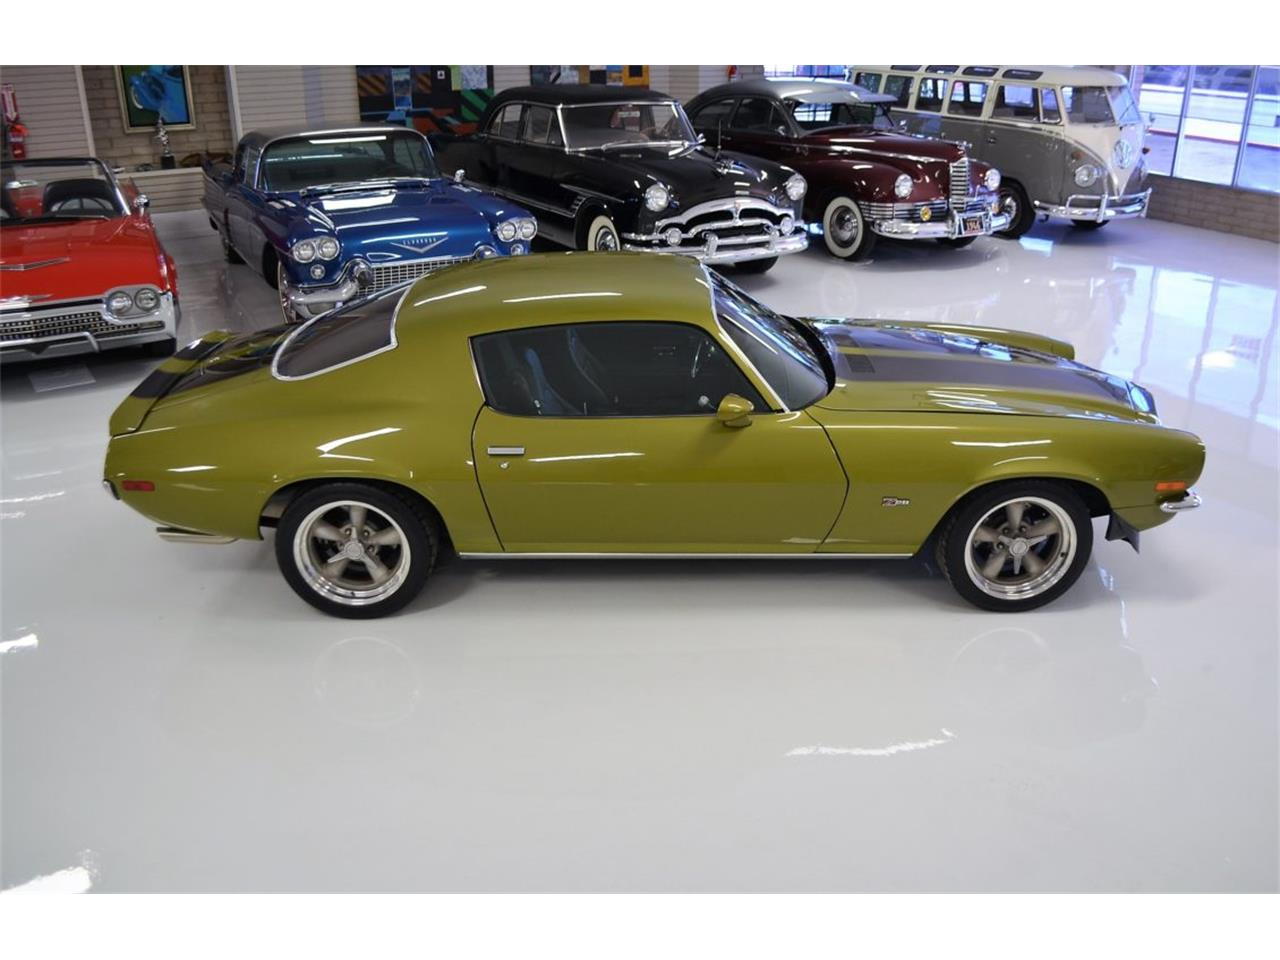 Large Picture of '71 Camaro Z28 located in Arizona - $49,800.00 Offered by Classic Promenade - Q6HZ